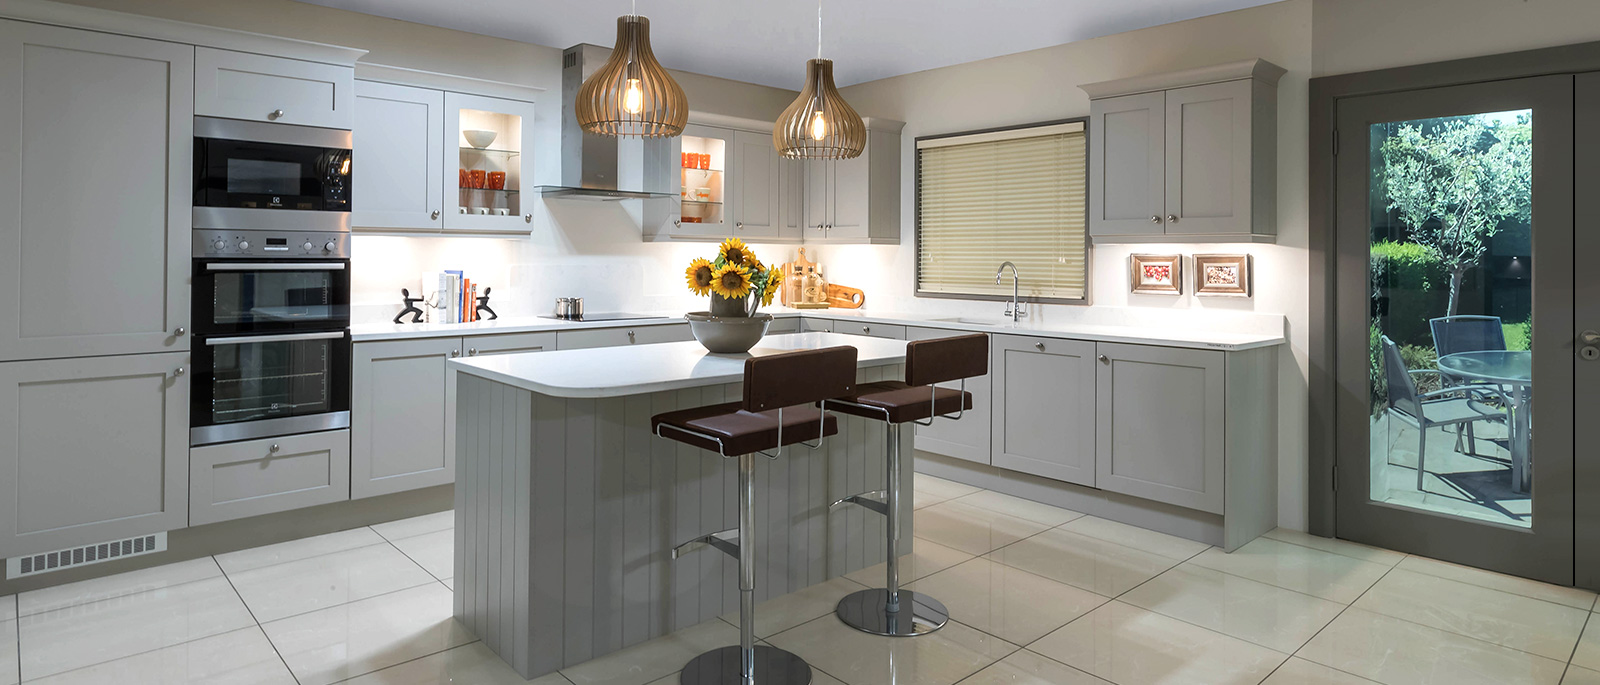 Kitchens Nolan Kitchens Contemporary Kitchens Fitted